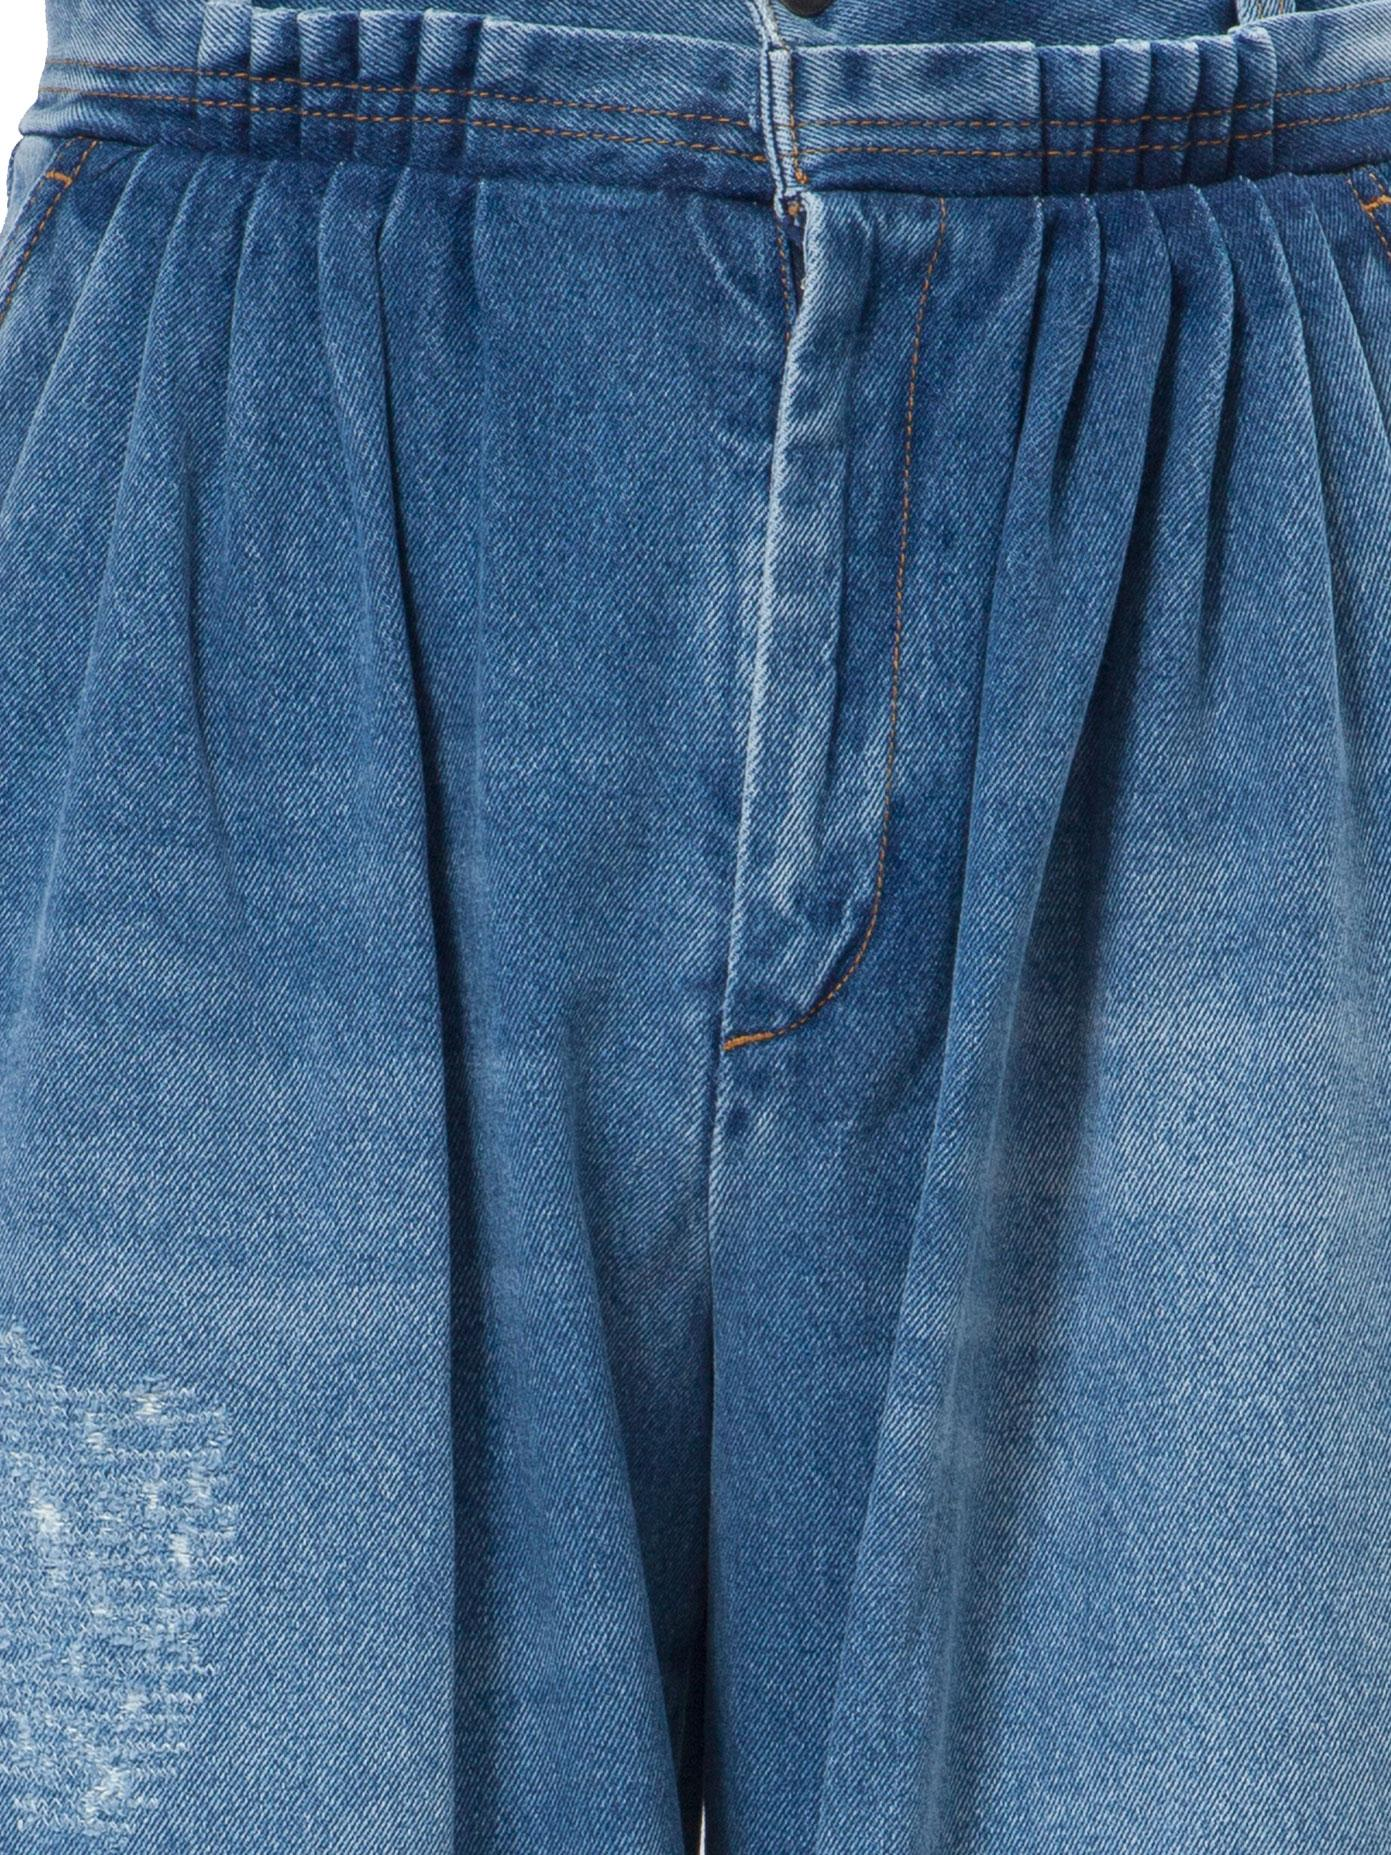 JW Anderson Pleated Denim Trousers in Blue for Men